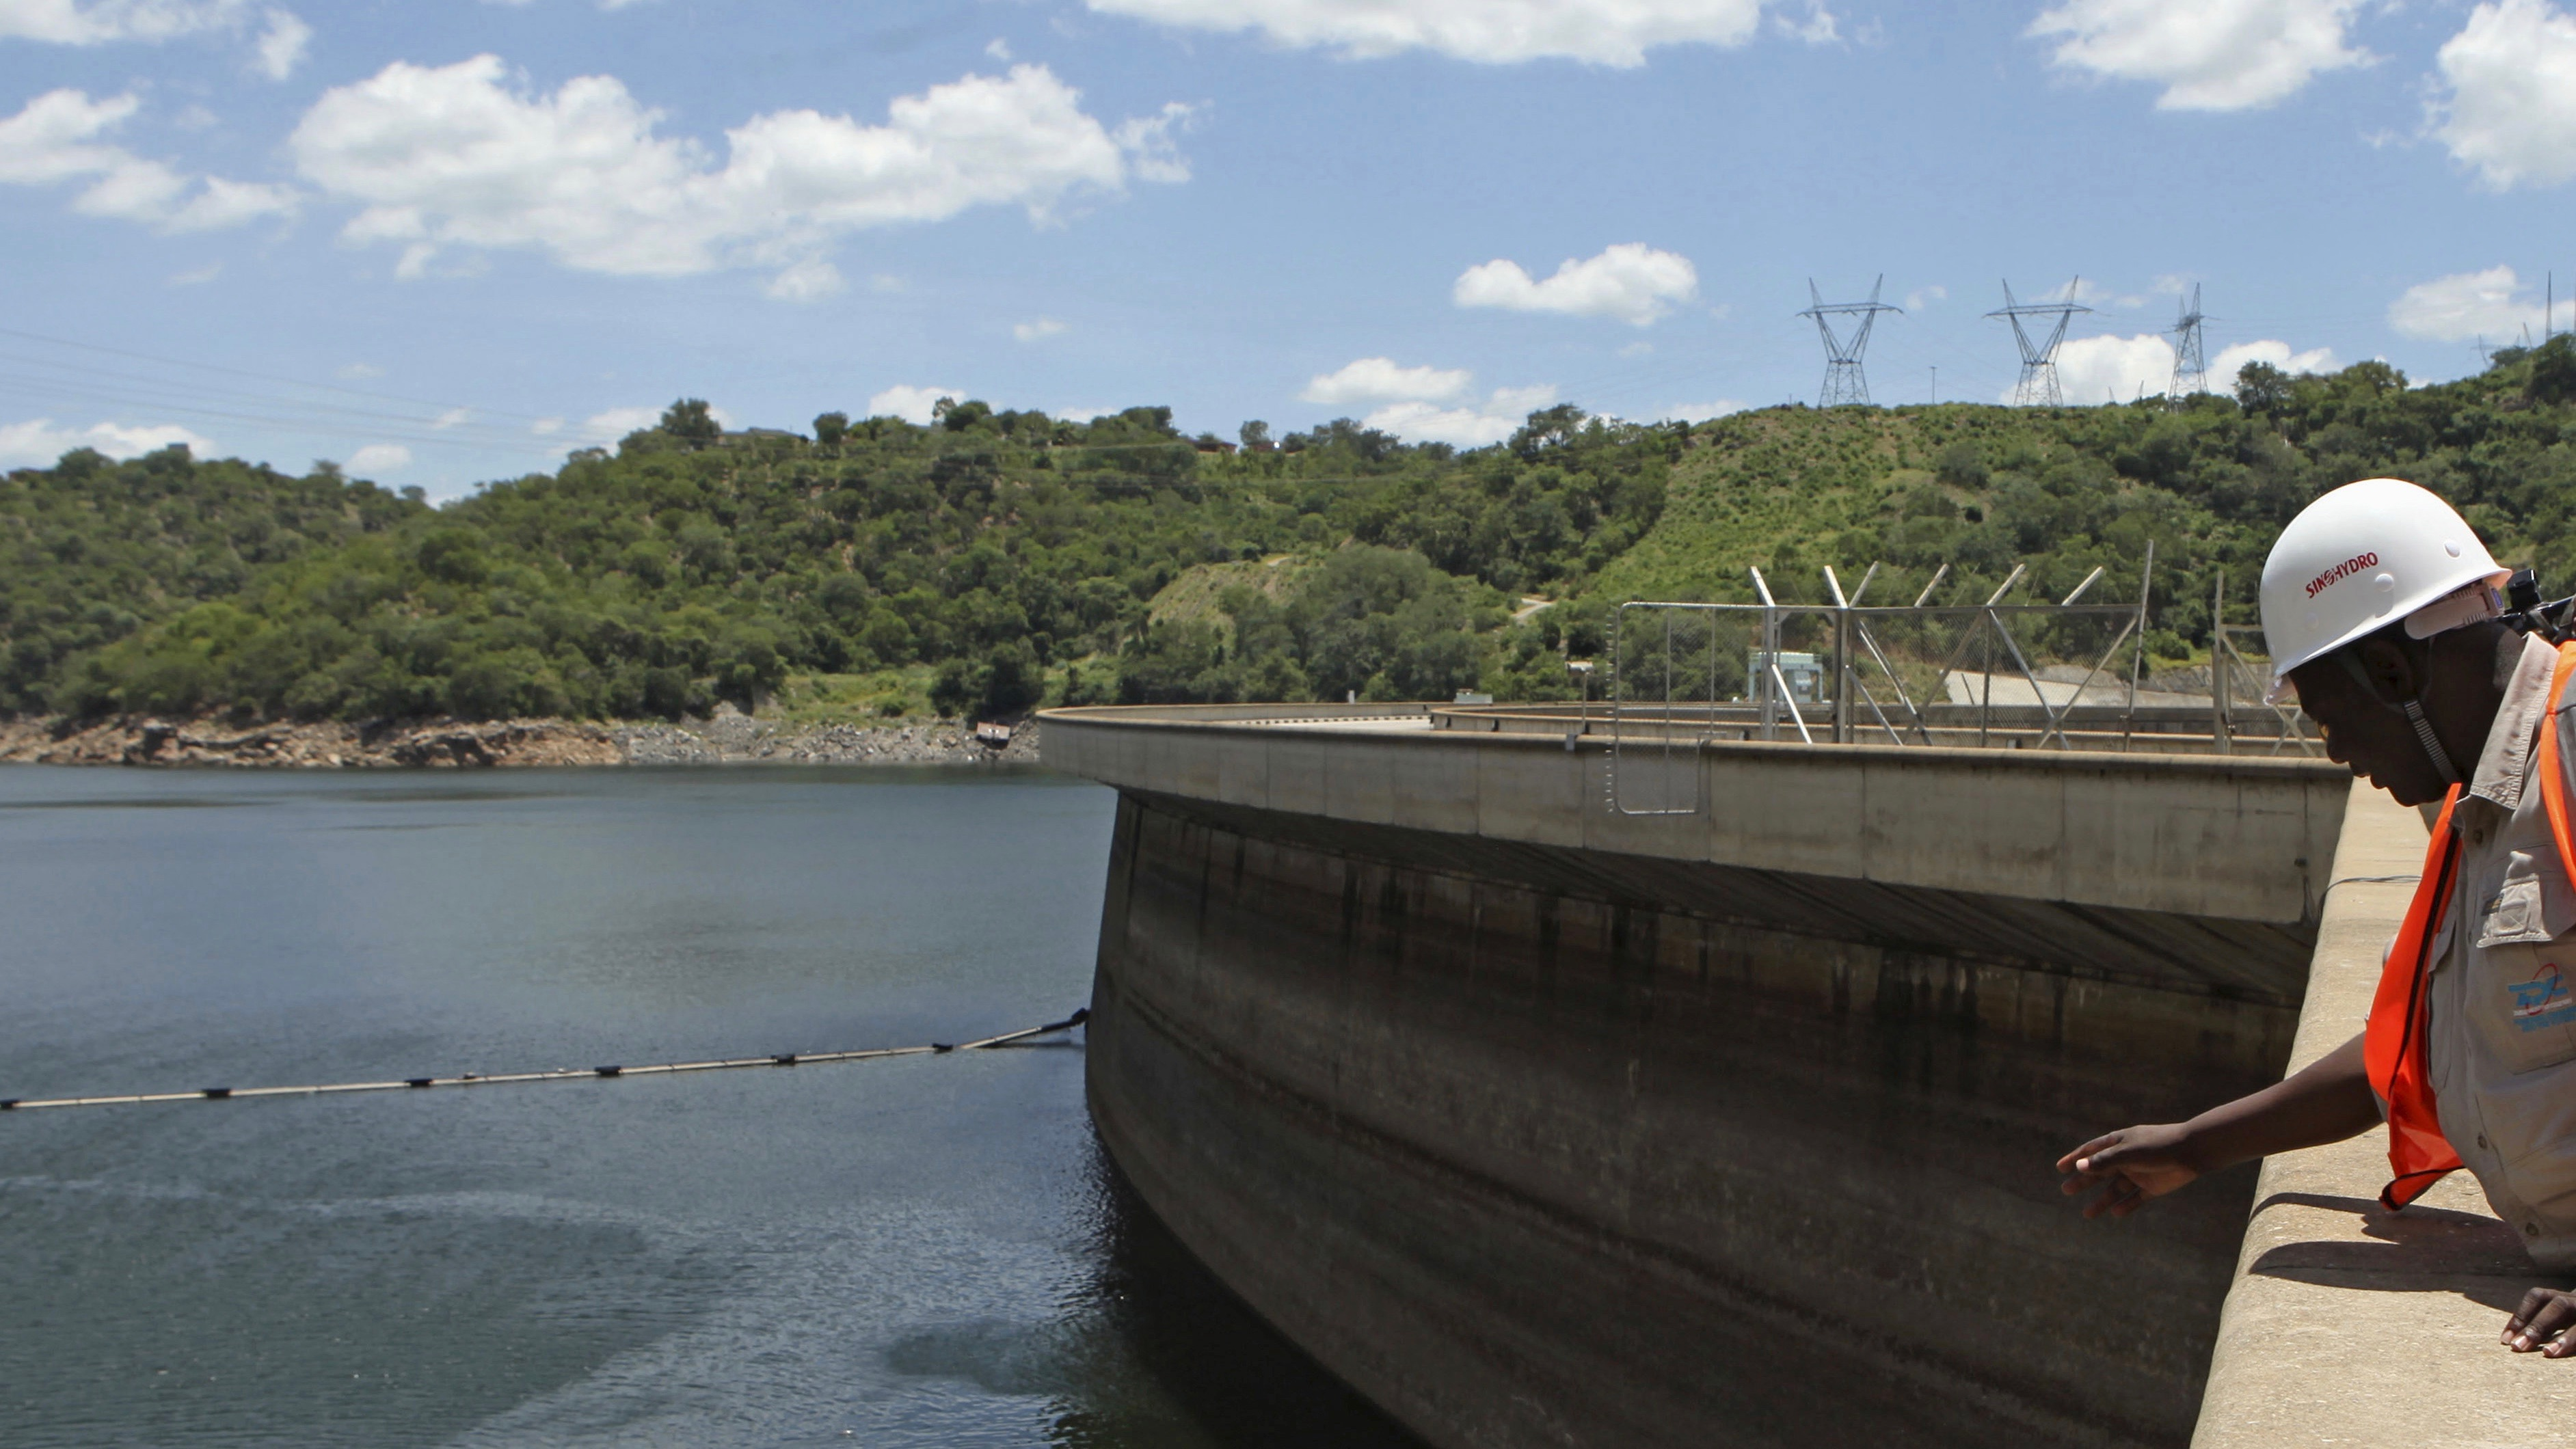 An official of the Zimbabwe Electricity Supply Authourity (ZESA) inspects water levels on the Kariba dam in Kariba, Zimbabwe, February 19, 2016.